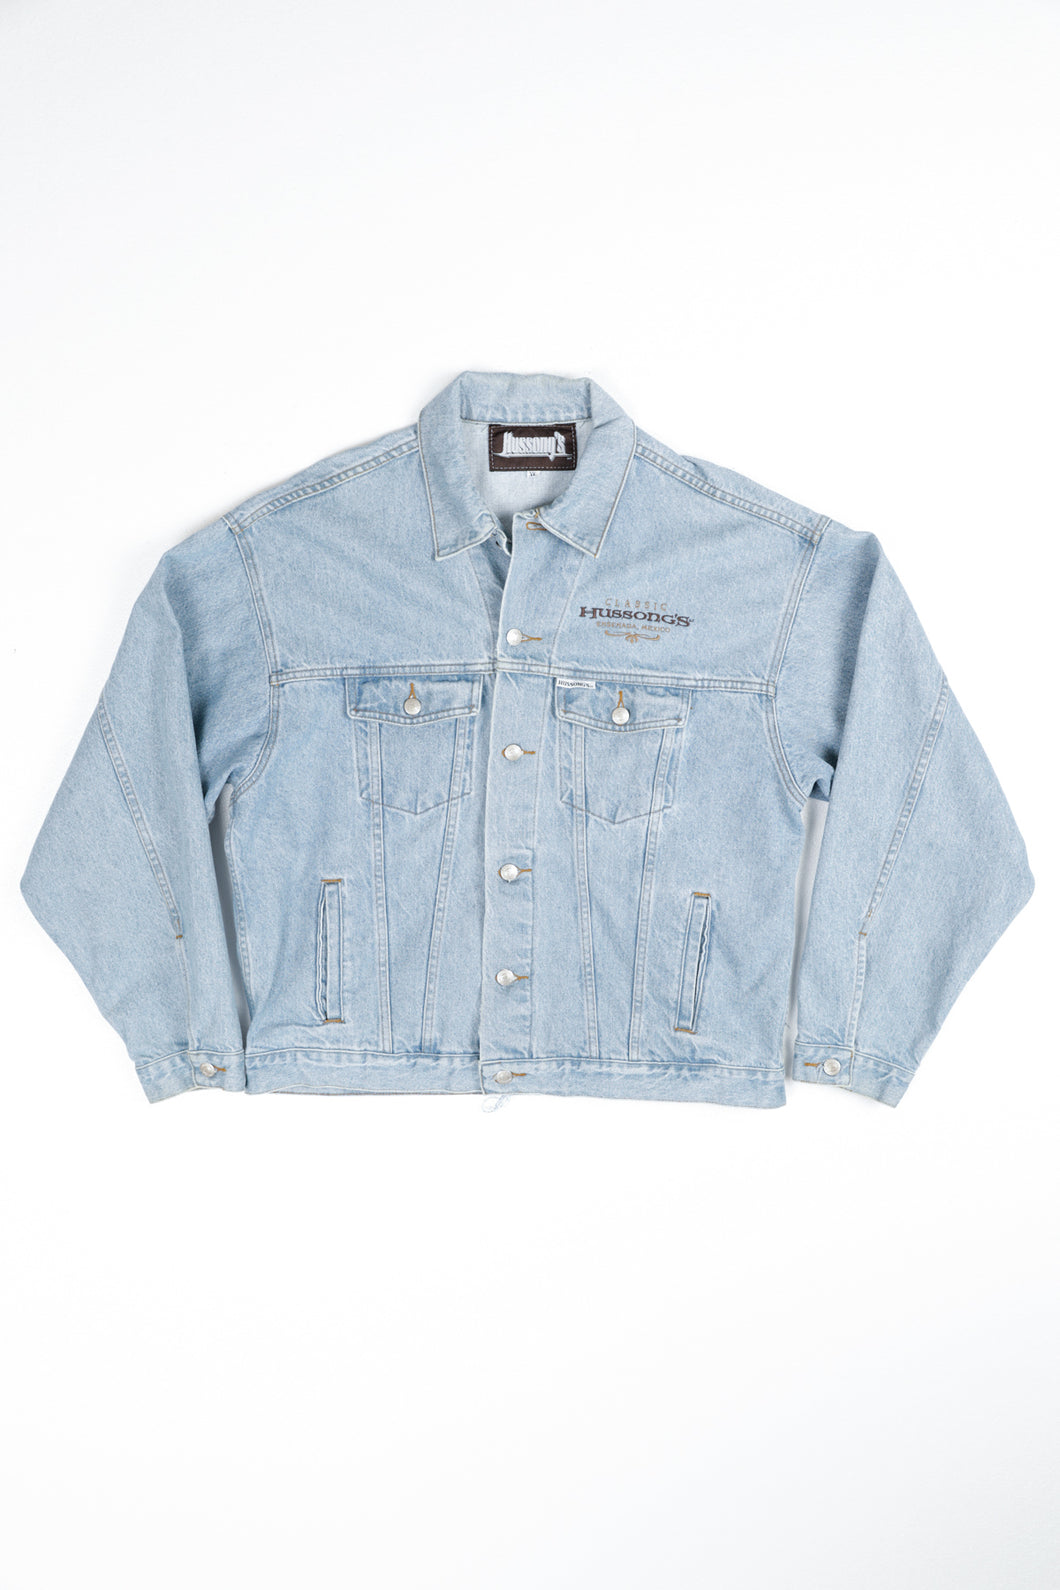 Hussongs Denim Jacket